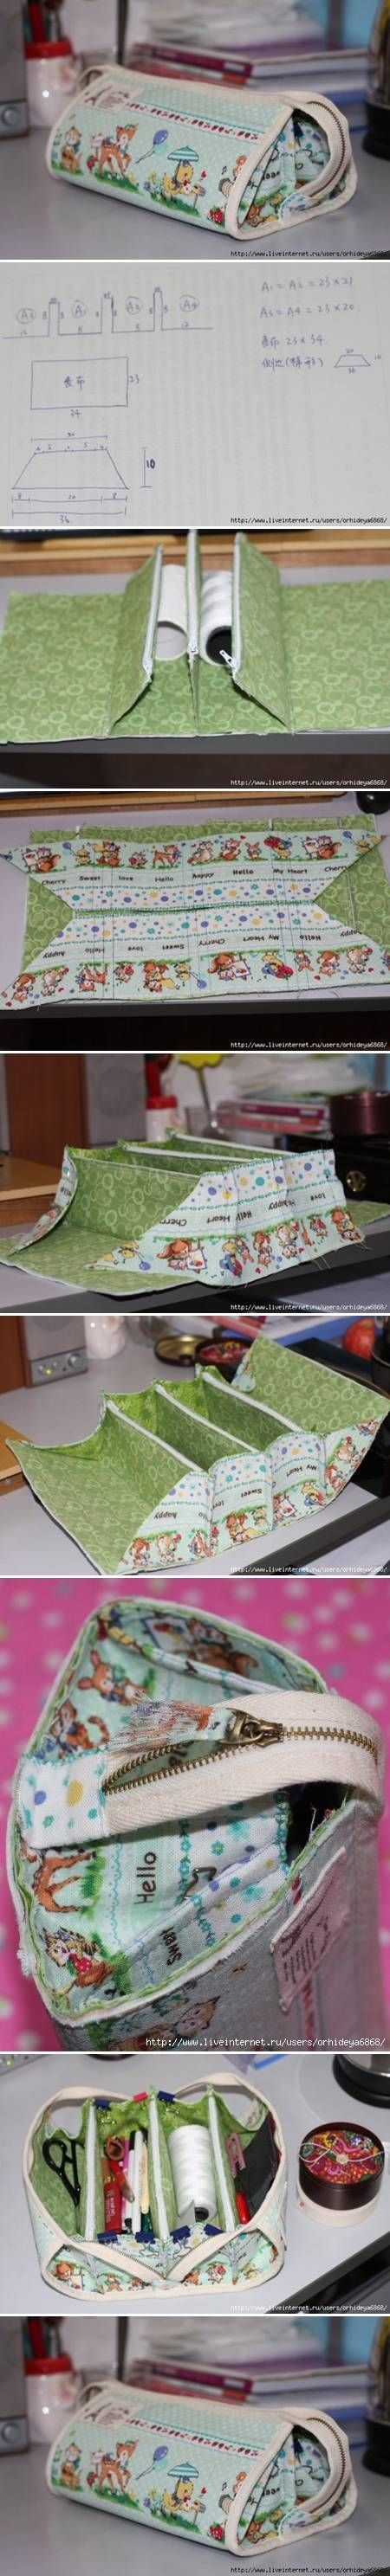 The best images about bags on pinterest patchwork bags bags